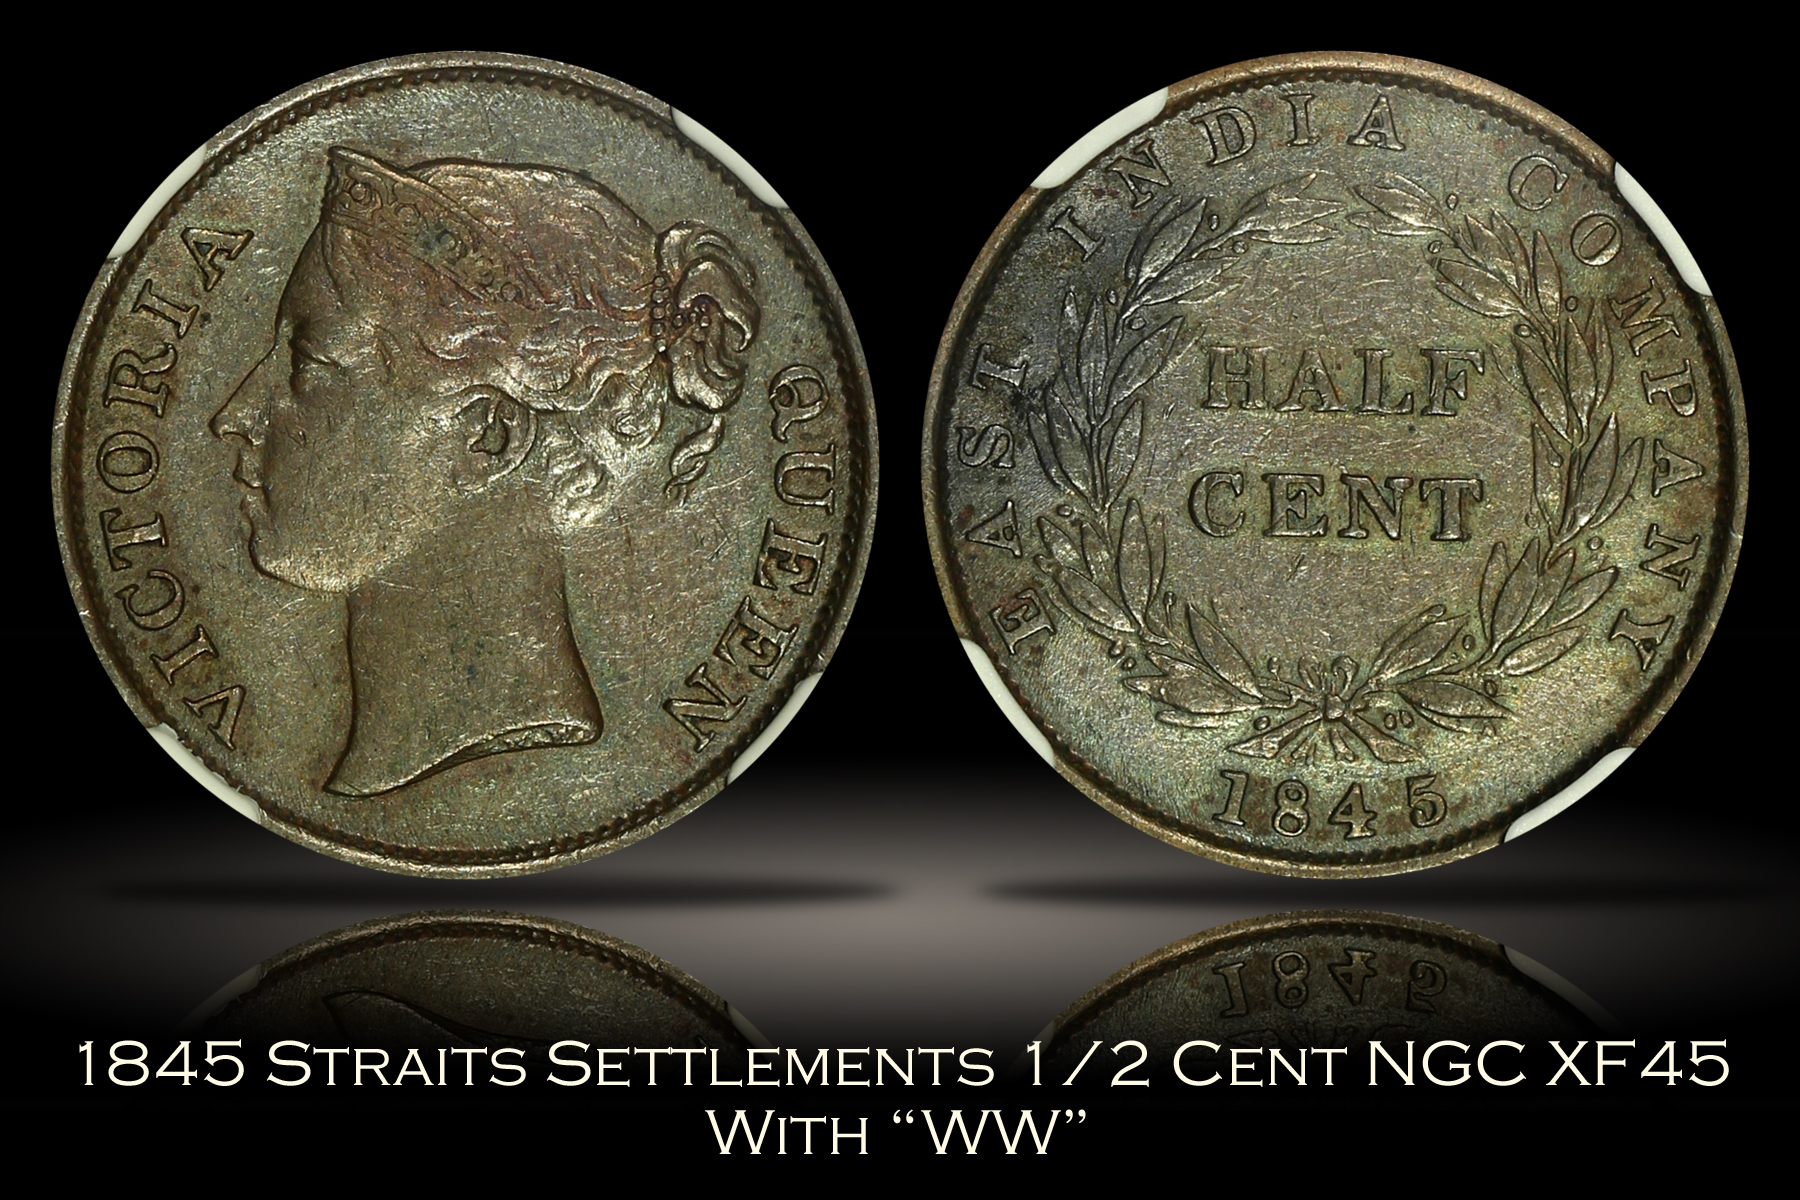 1845 Straits Settlements 1/2 Cent with WW NGC XF45